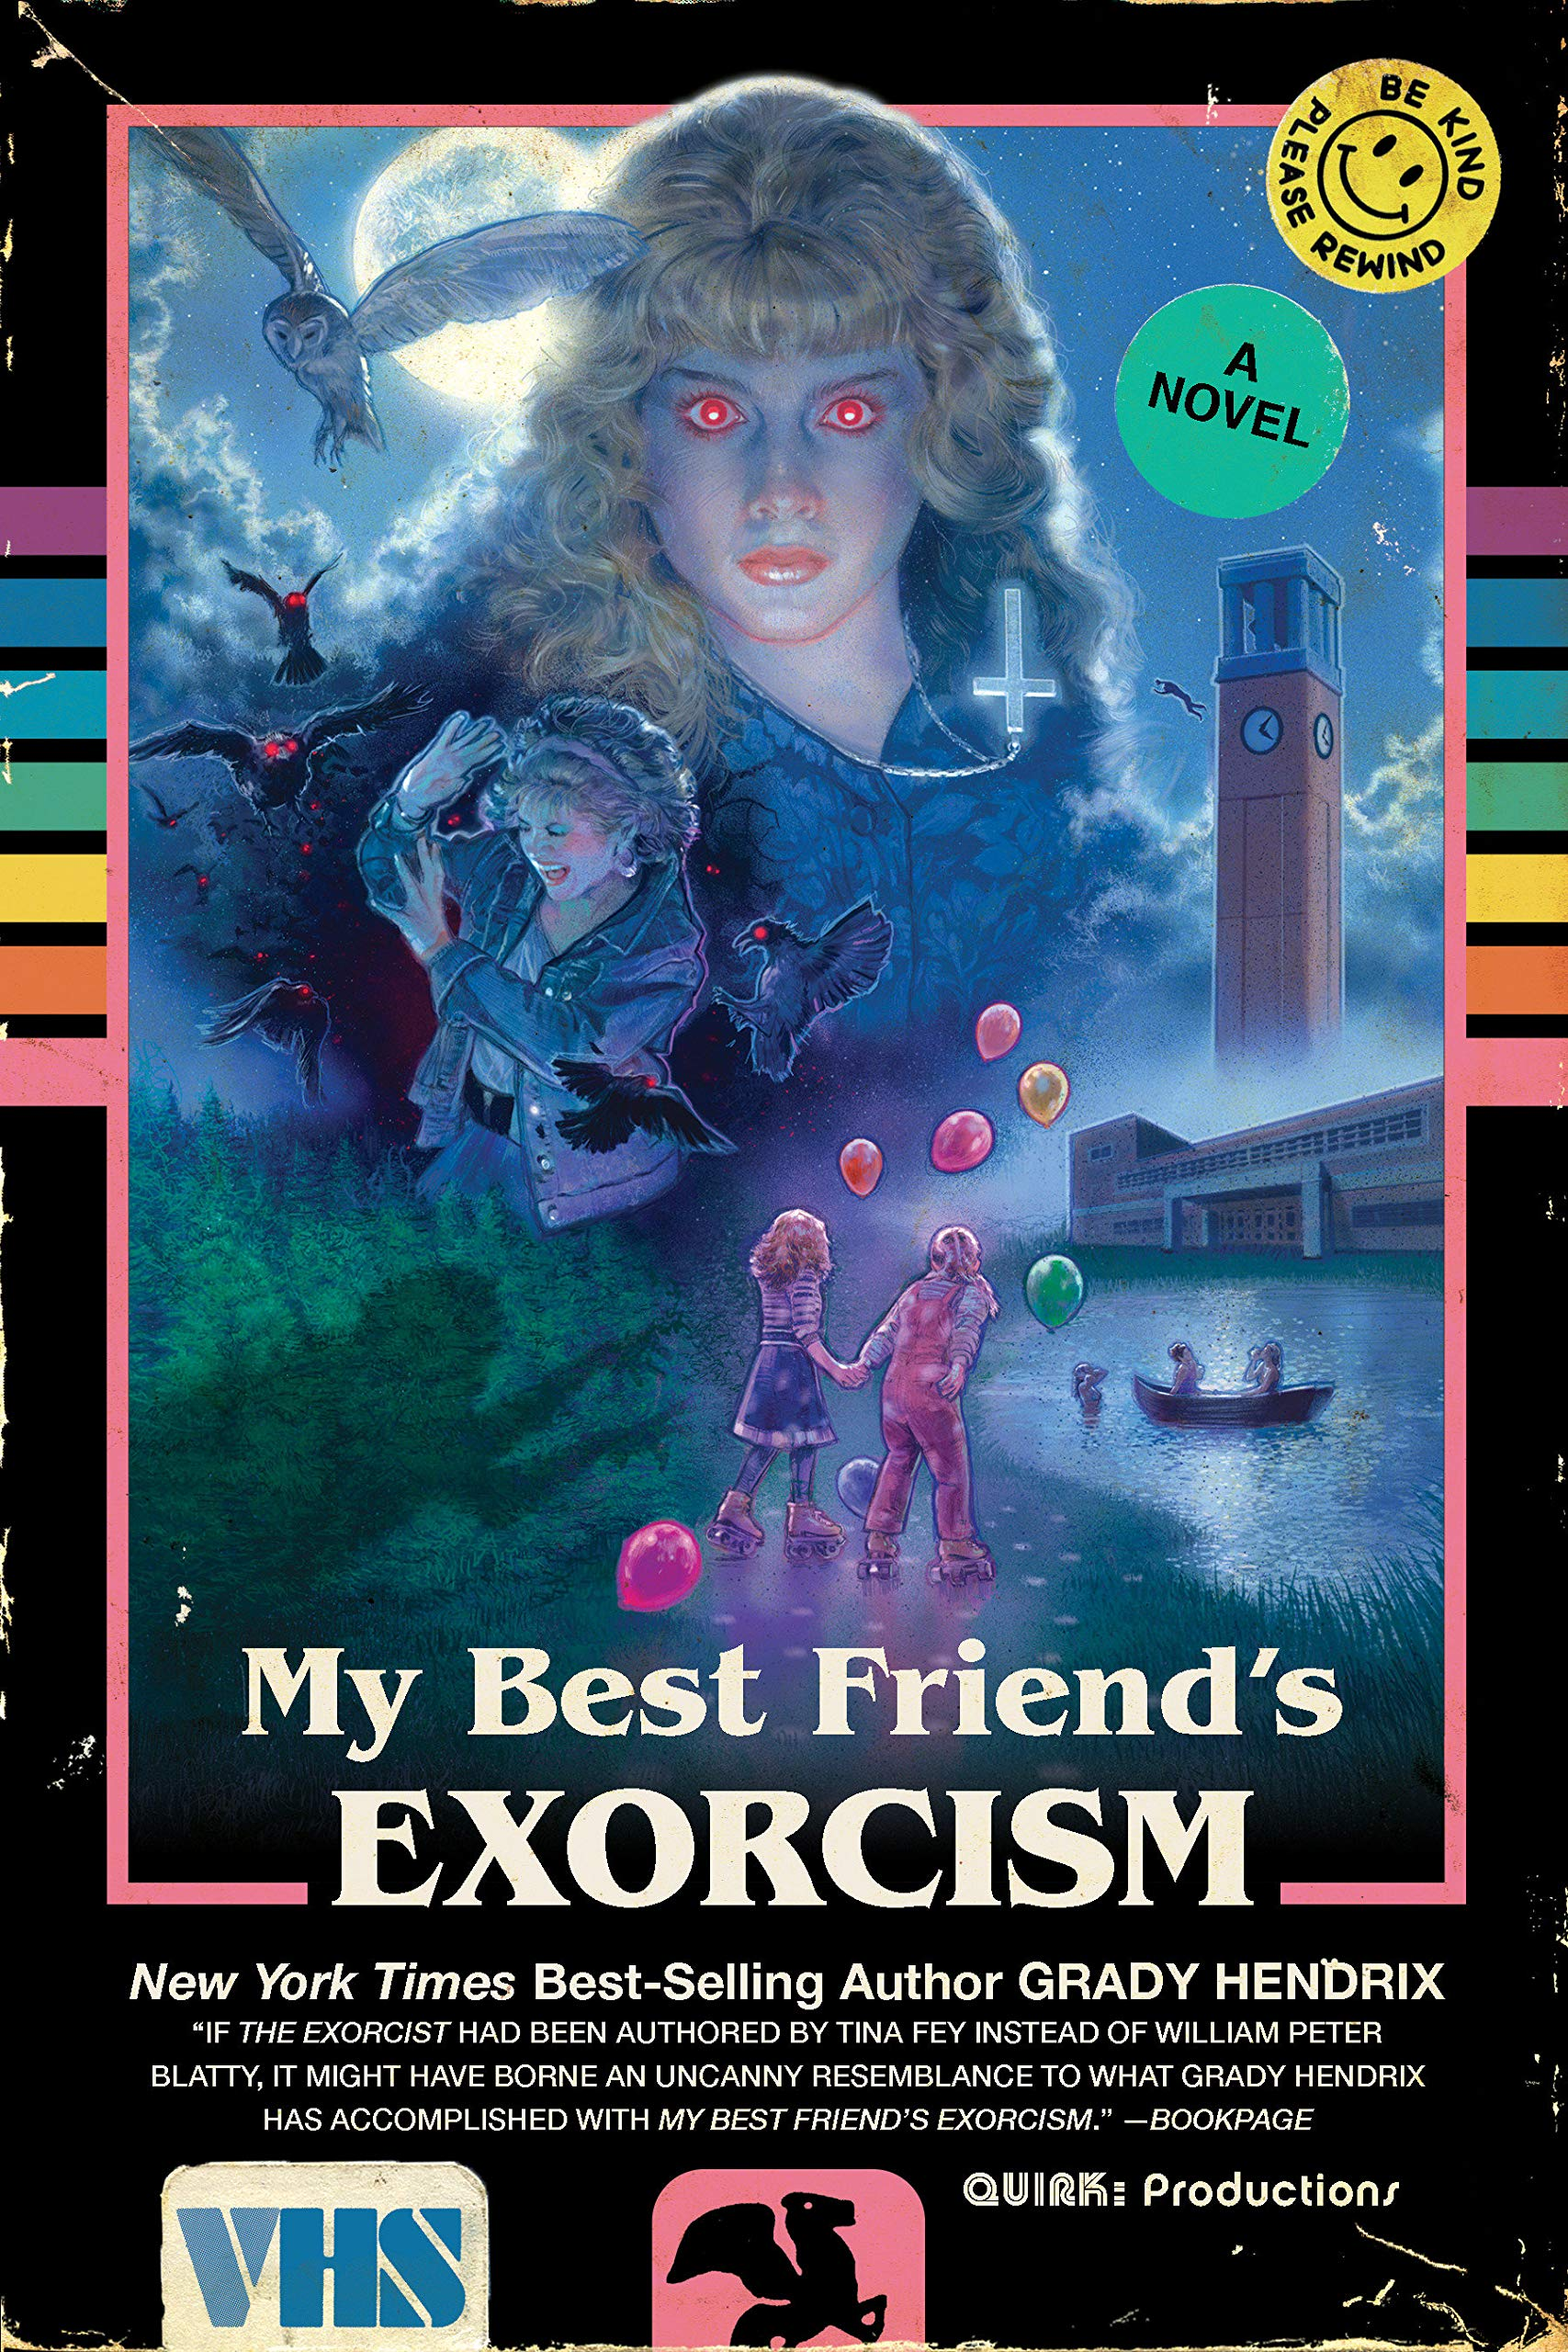 Buy My Best Friend's Exorcism: A Novel Book Online at Low Prices in India |  My Best Friend's Exorcism: A Novel Reviews & Ratings - Amazon.in